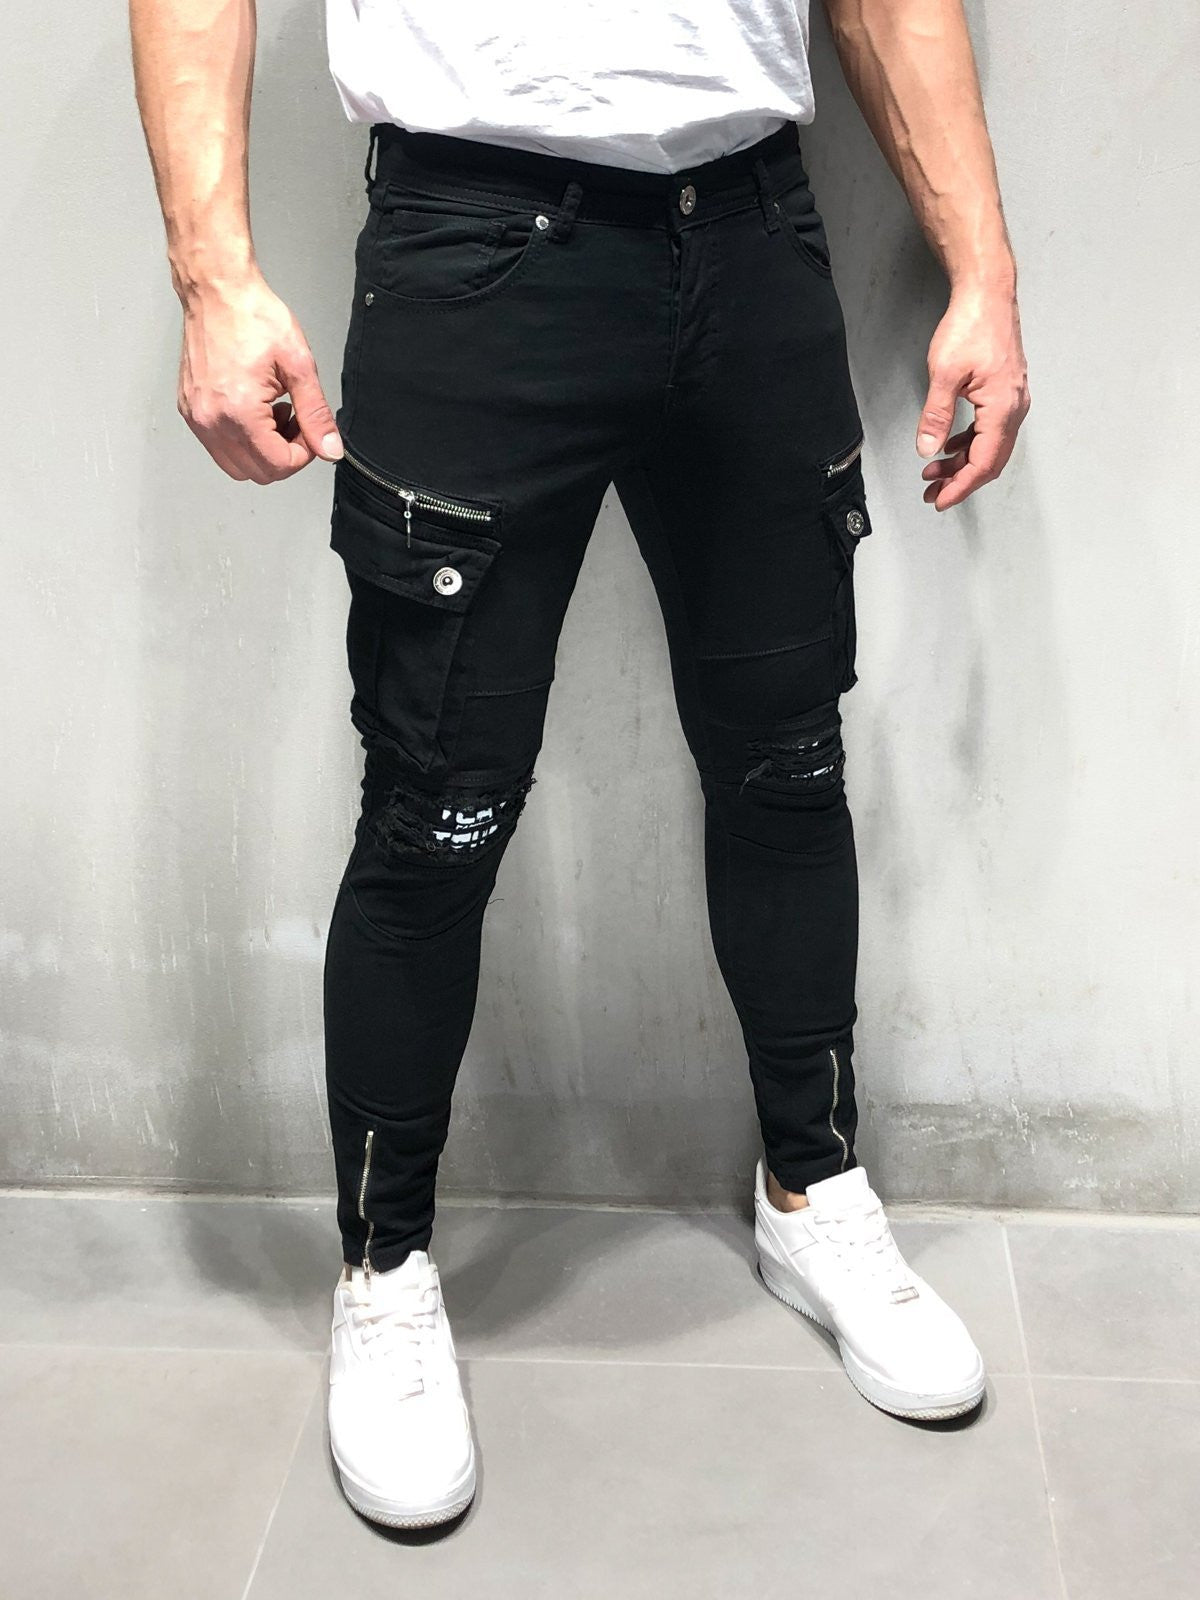 Black Cargo Jeans Ripped & Repaired Knee